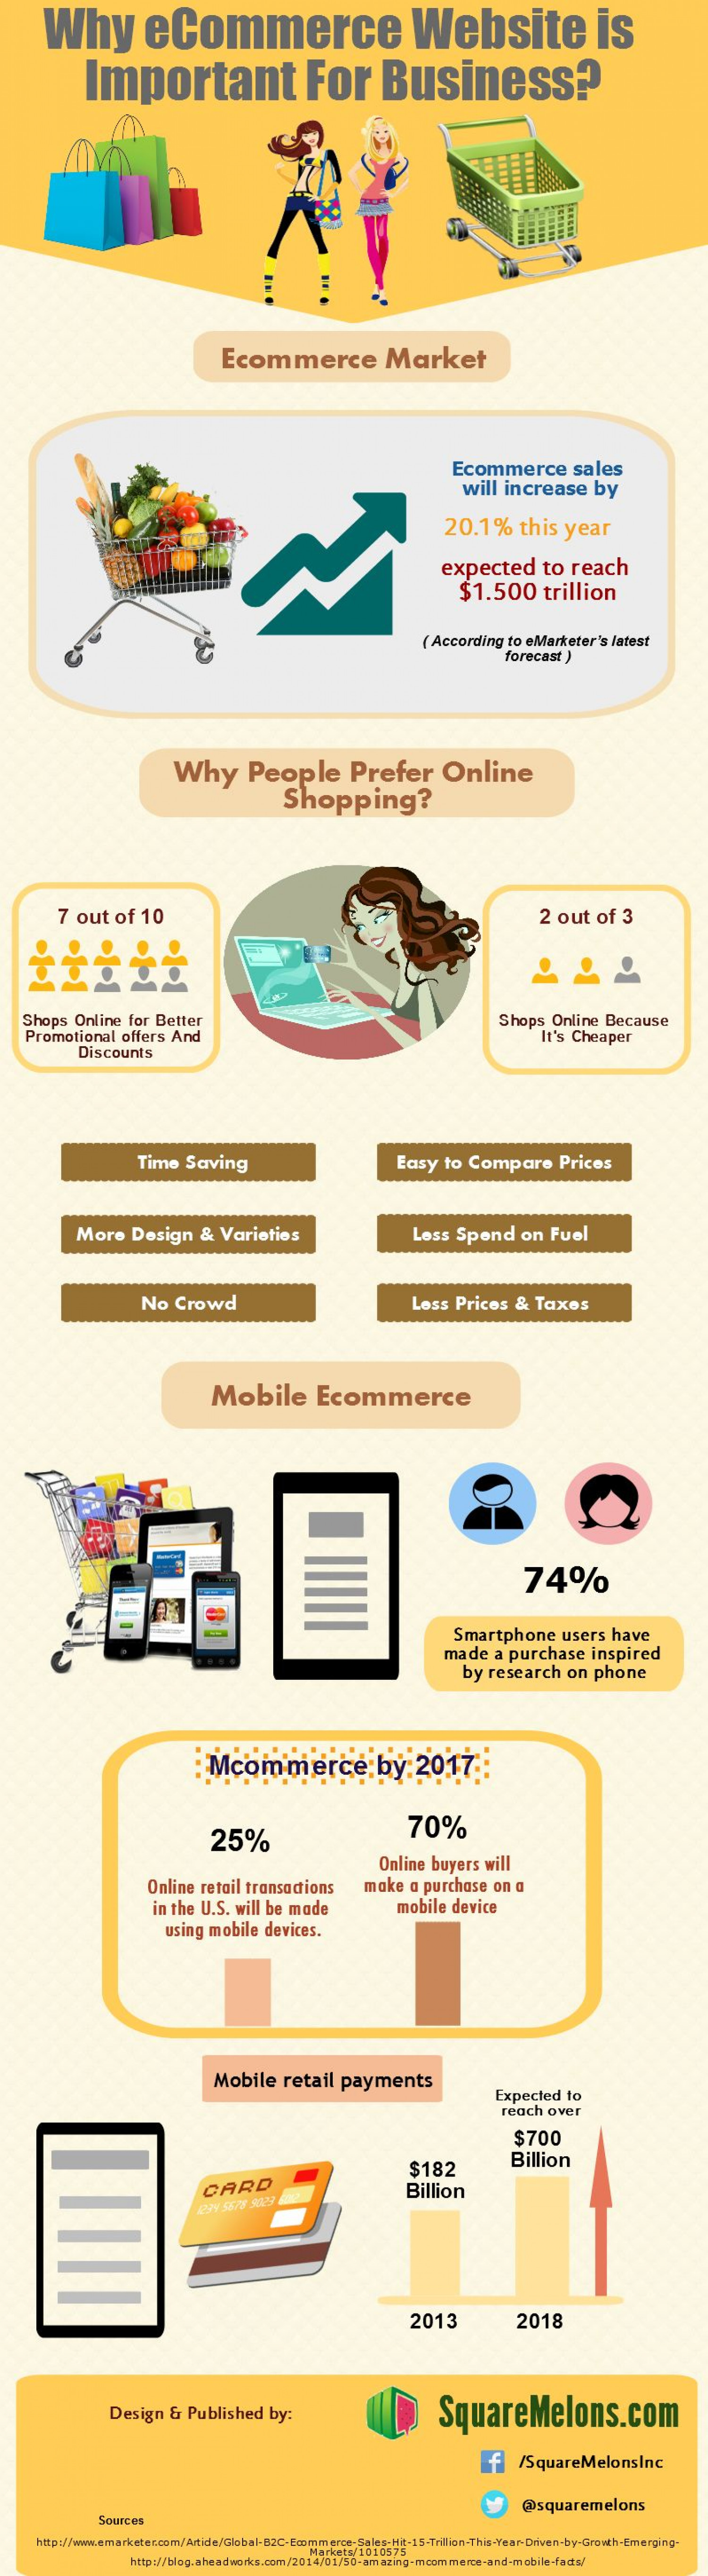 Why ecommerce website is important for business? Infographic